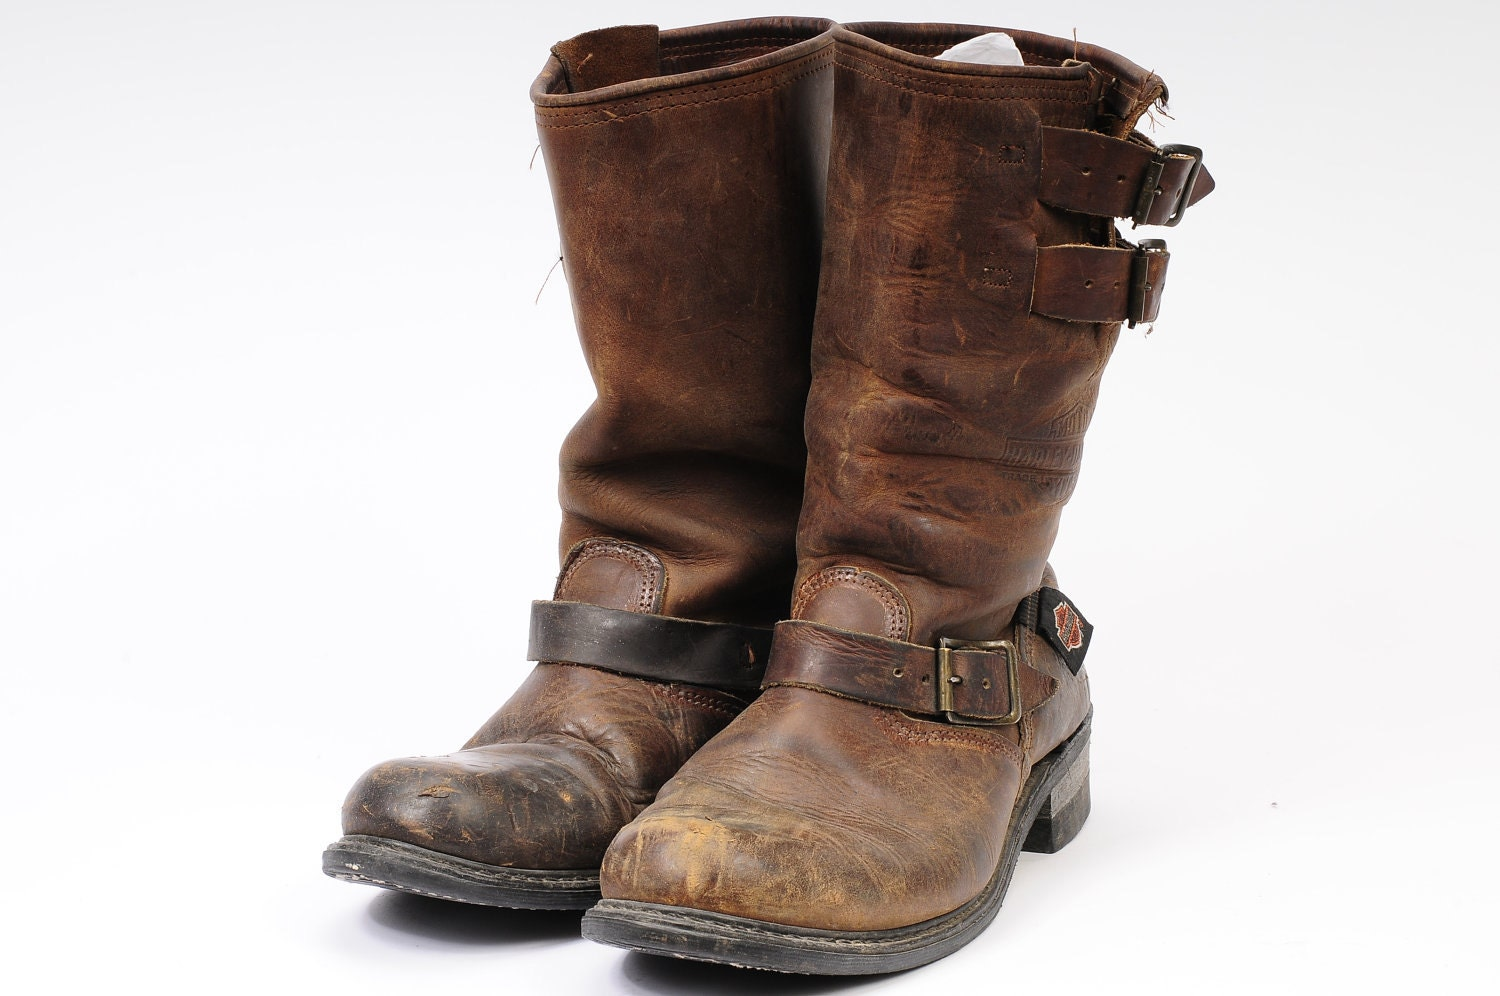 harley davidson size 9 engineer boot brown motorcycle boot